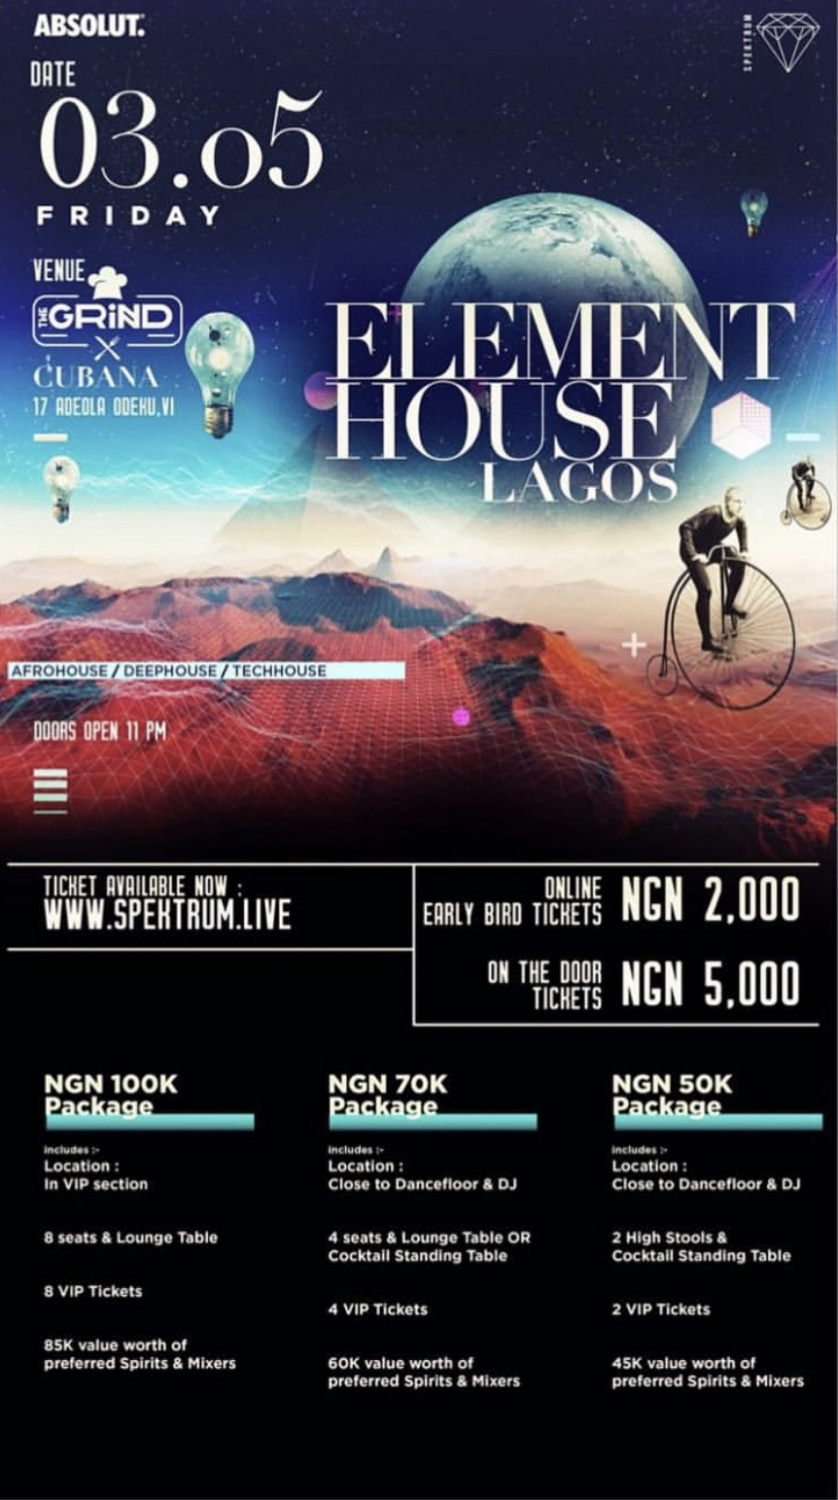 Element house Lagos